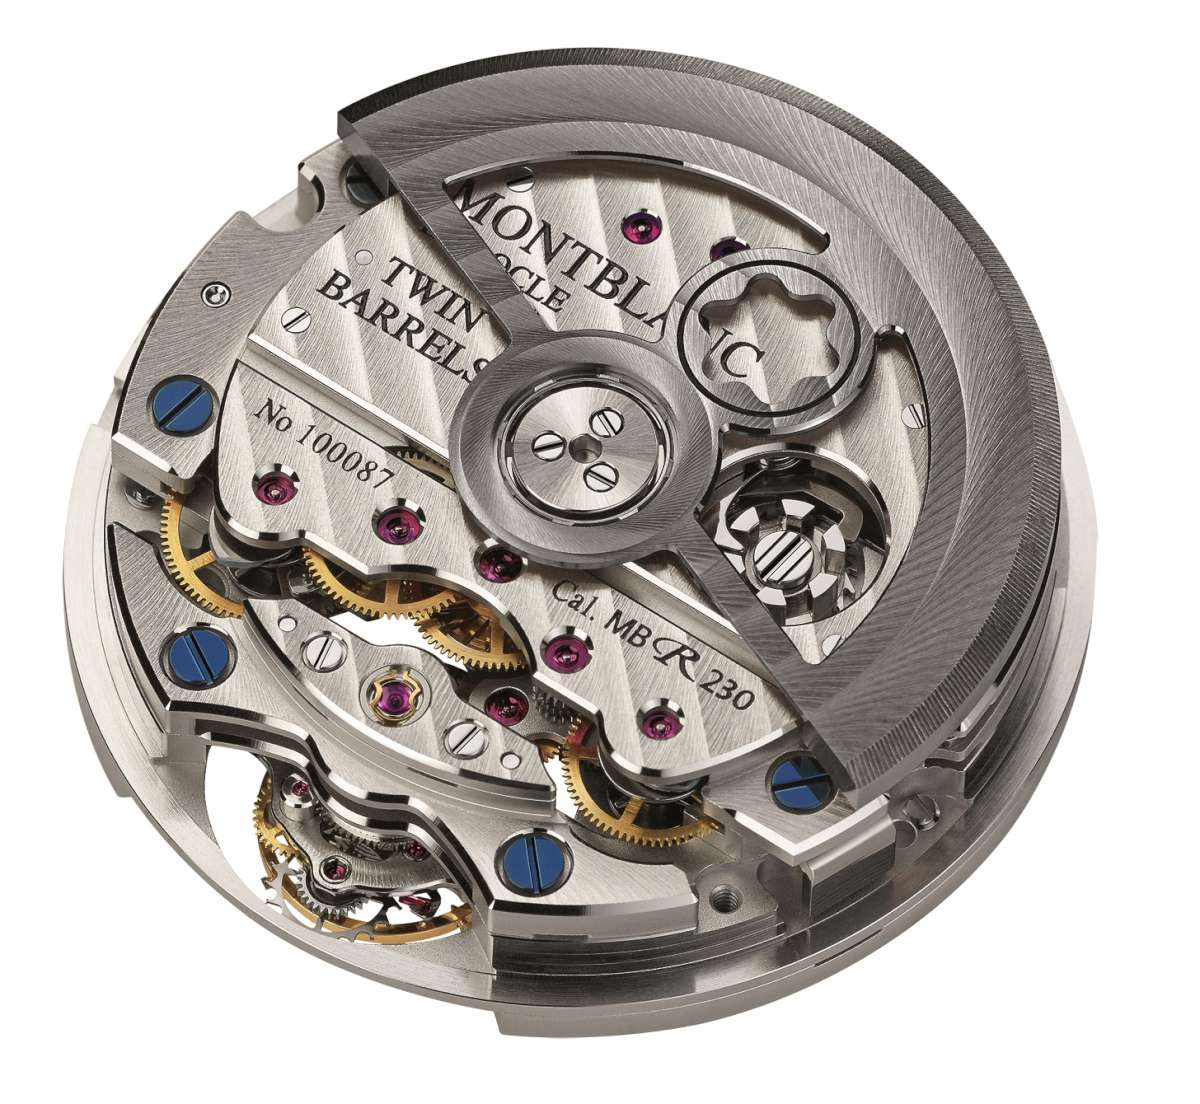 Montblanc MB R230 movement